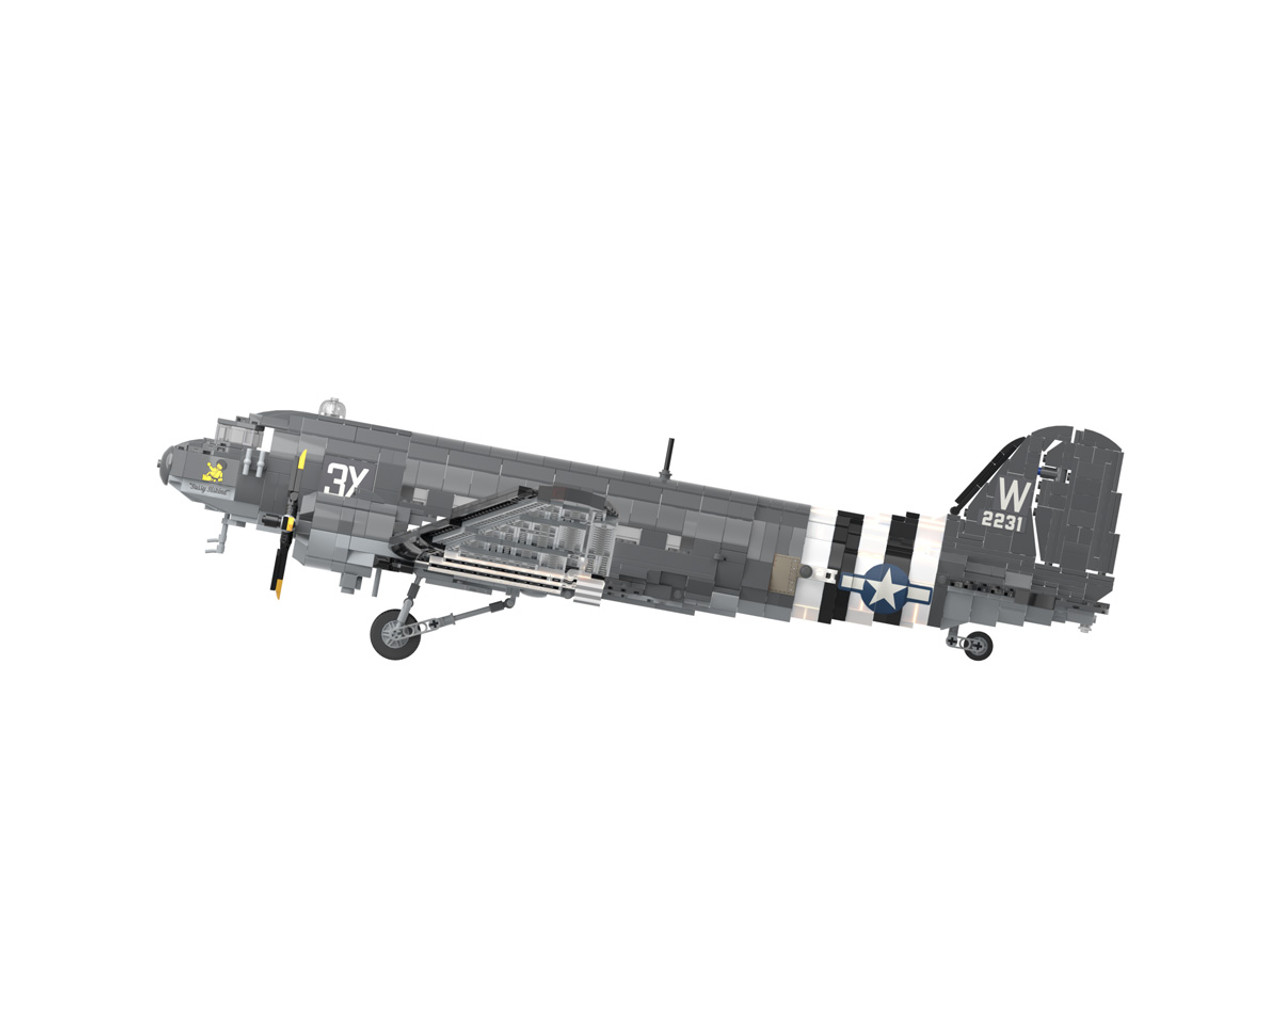 C-47 Skytrain - Military Transport Aircraft